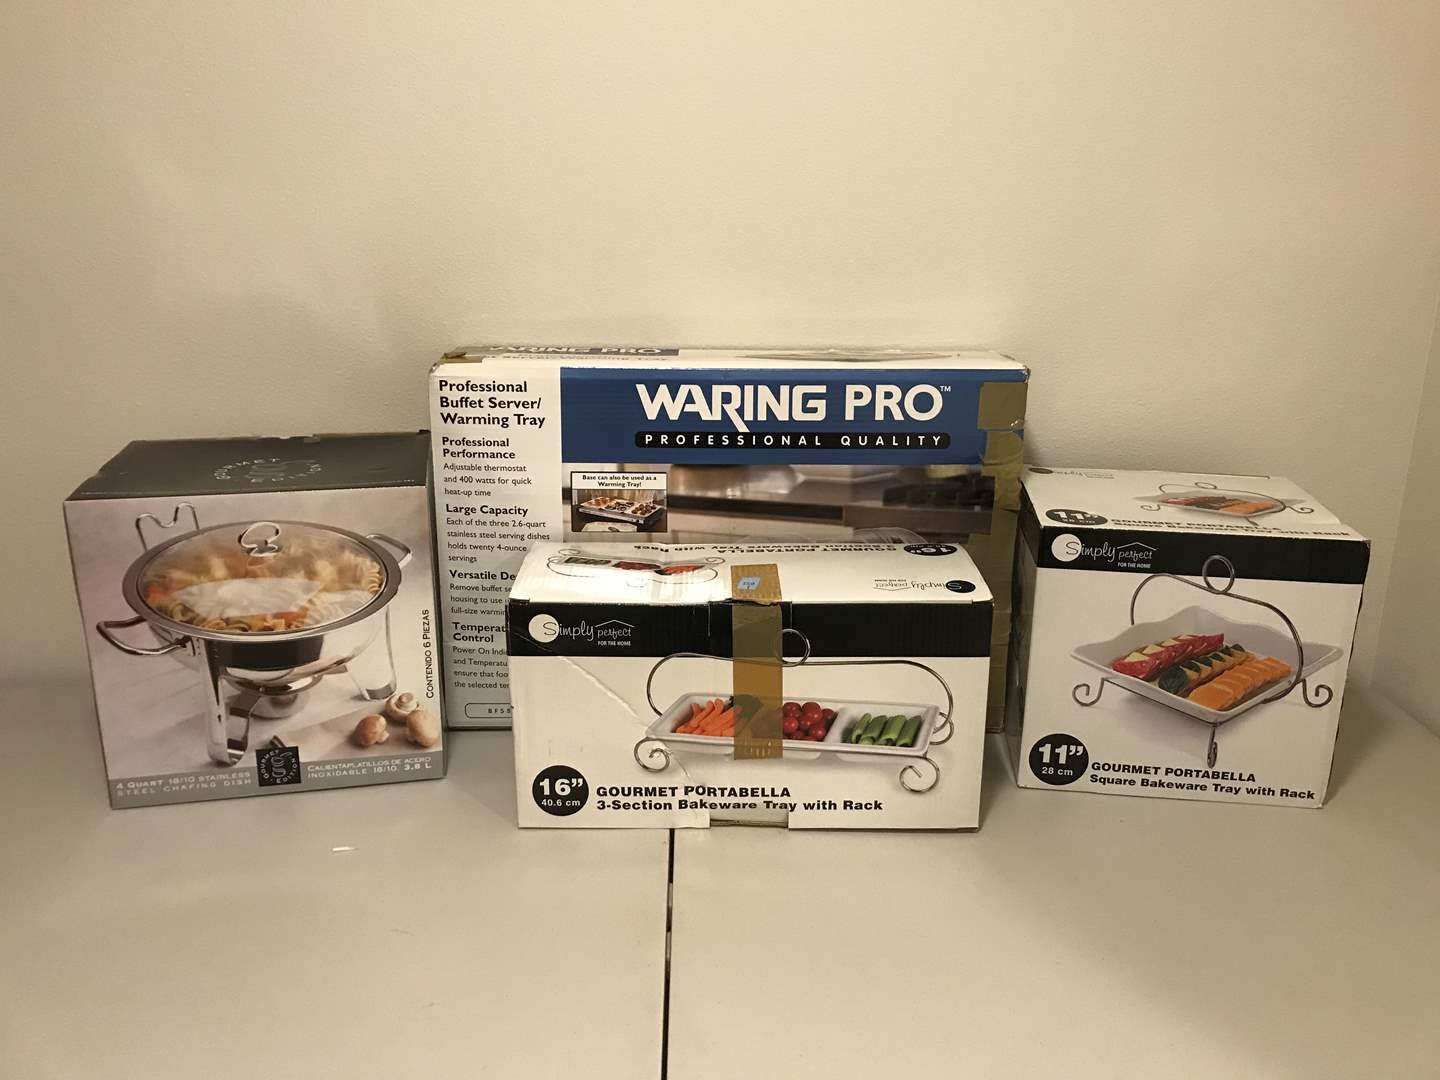 Lot # 292 - New in Box Waring Pro Professional Buffet Server, Gourmet Edition Chafing Dish & 2 Simply Perfect Serving Dishes (main image)